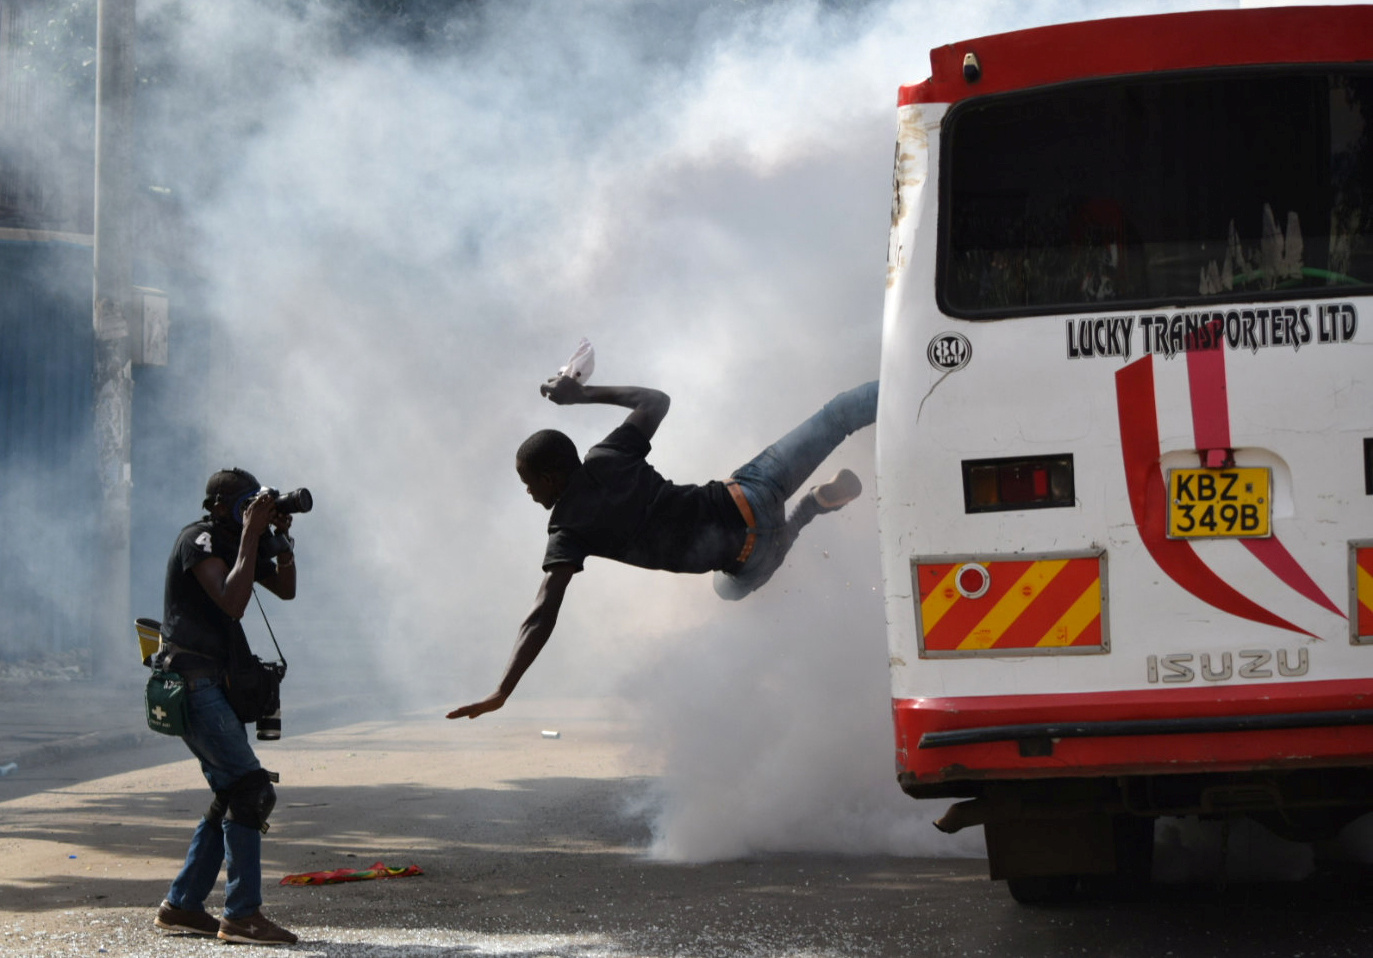 A supporter of Kenyan opposition leader Raila Odinga of the National Super Alliance (NASA) coalition jumps from a bus after riot police fired teargas canisters to disperse them after his swearing-in ceremony in Nairobi, Kenya January 30, 2018.